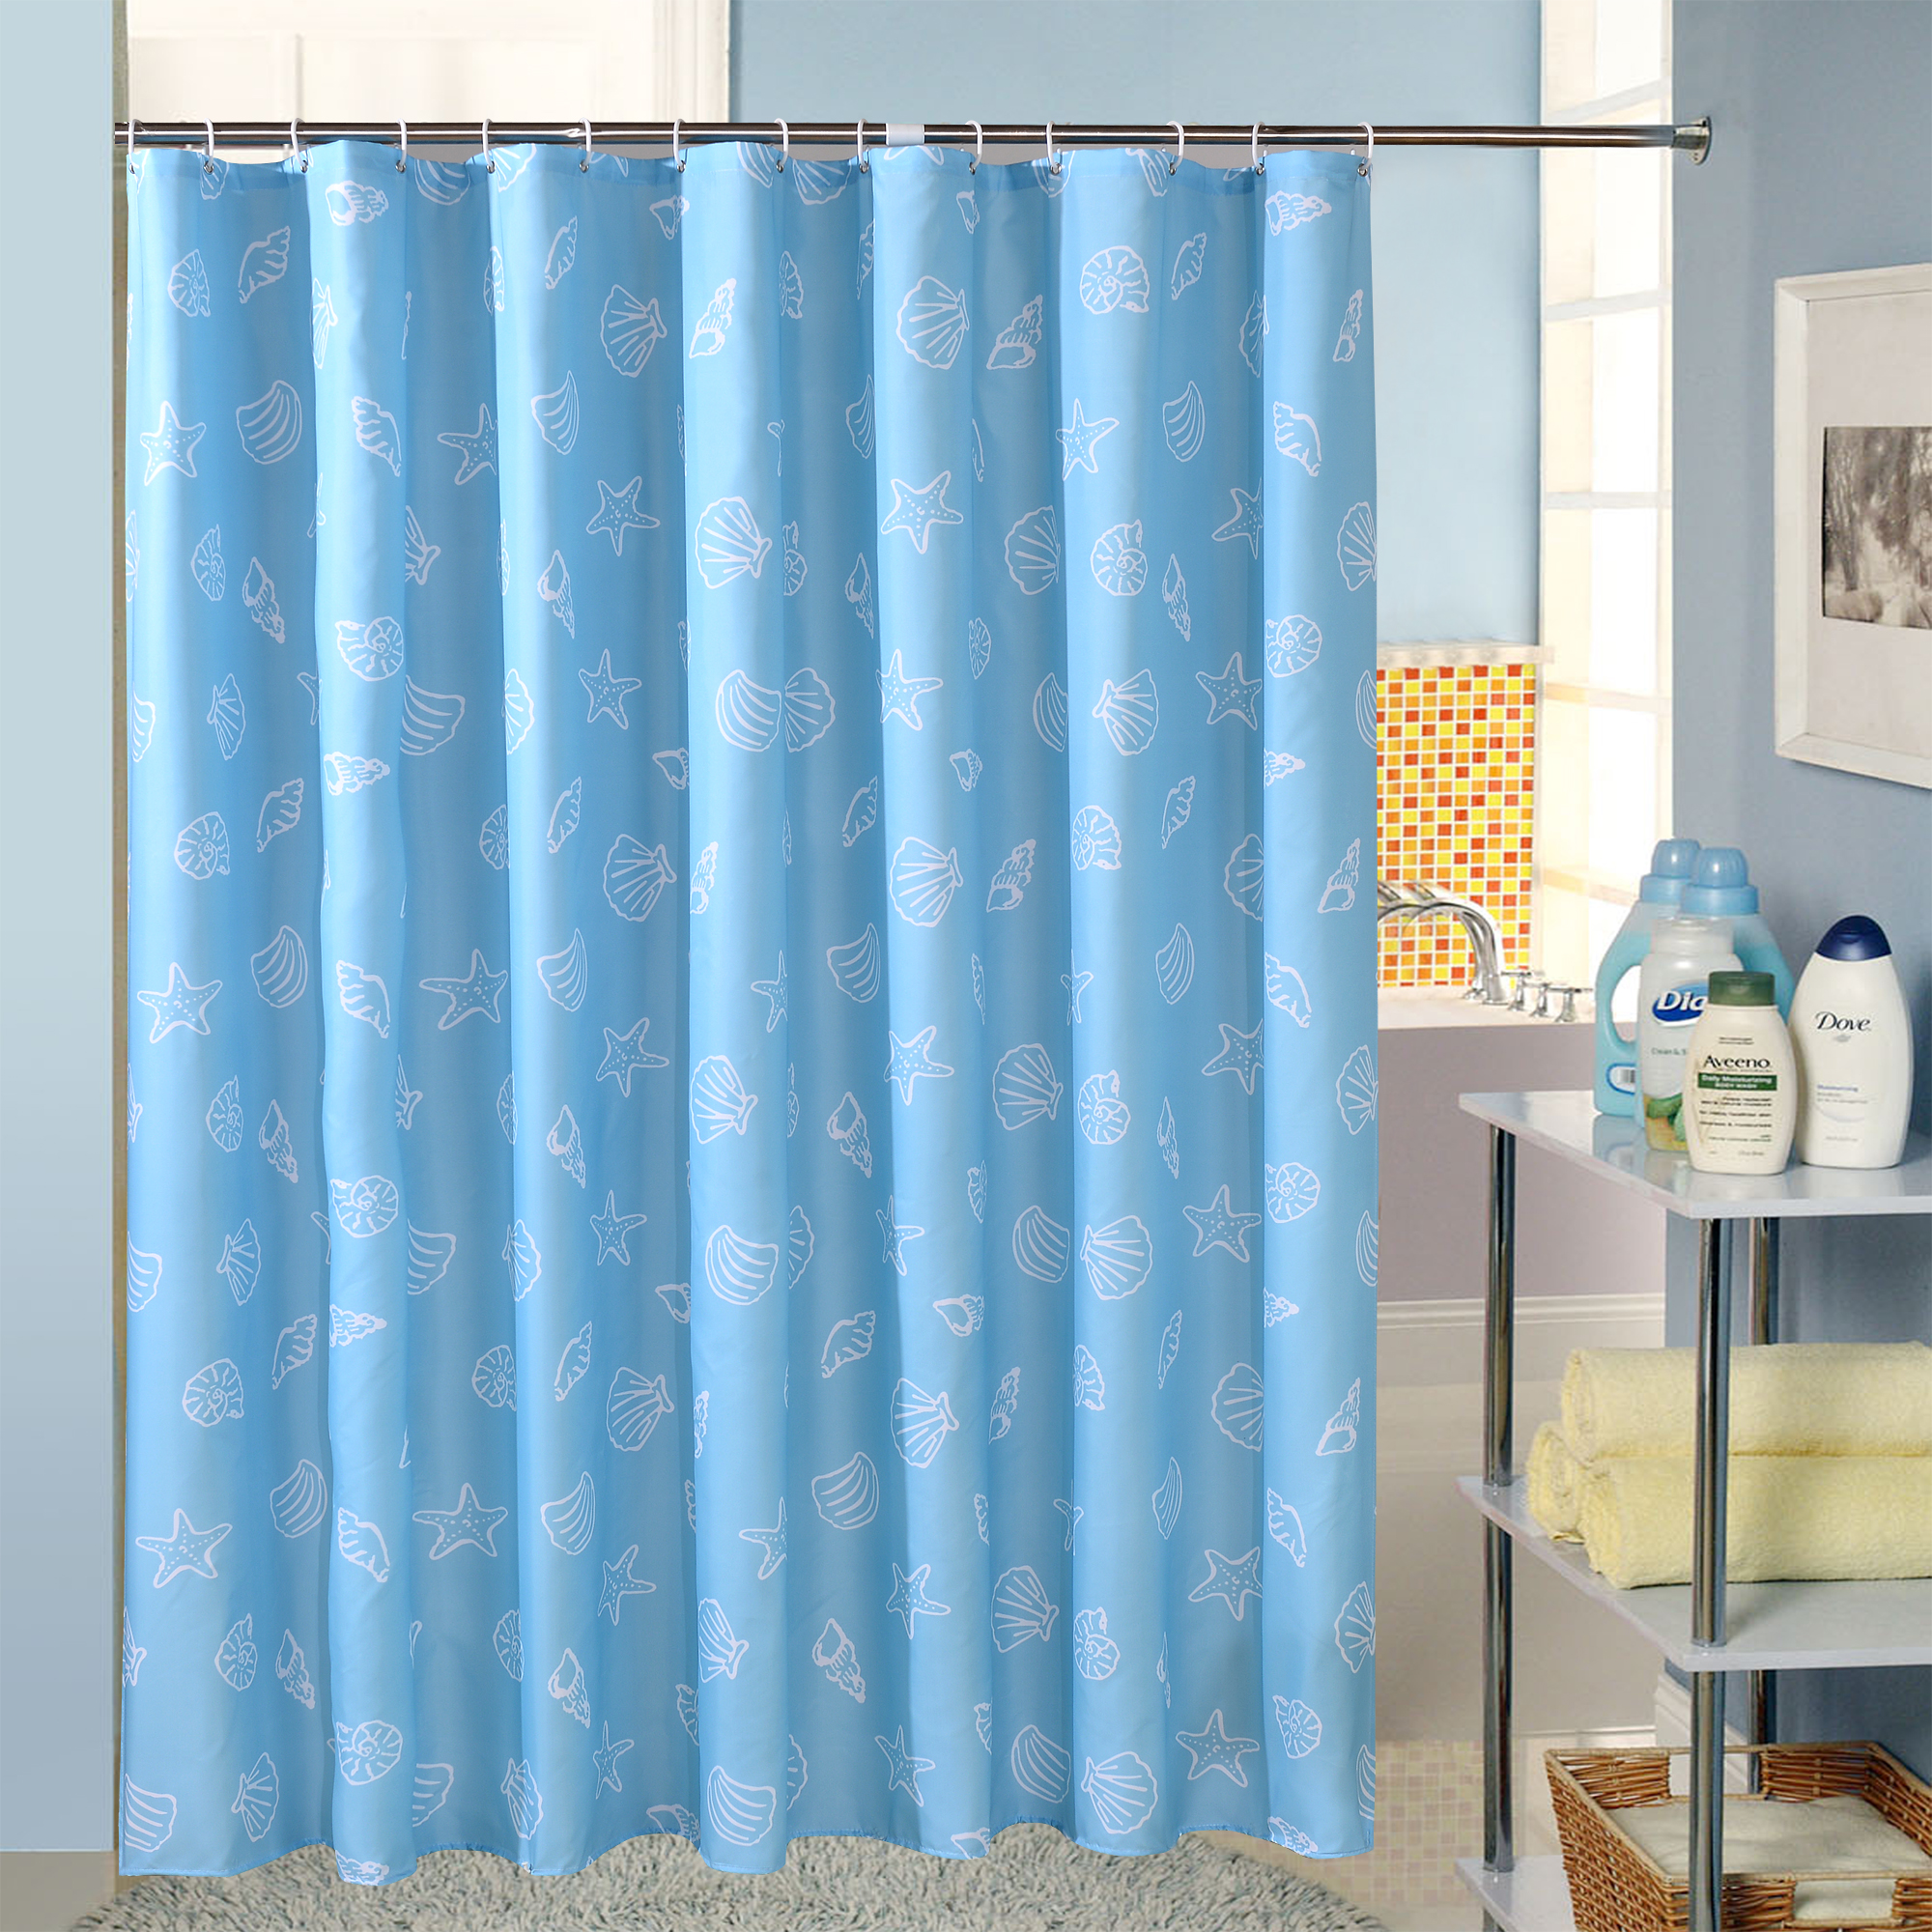 Blue curtains for bathroom - Starfish Polyester Terylene Blue Sea Life Seashell Waterproof Shower Curtain Thicken Shower Curtain Bathroom Curtain With